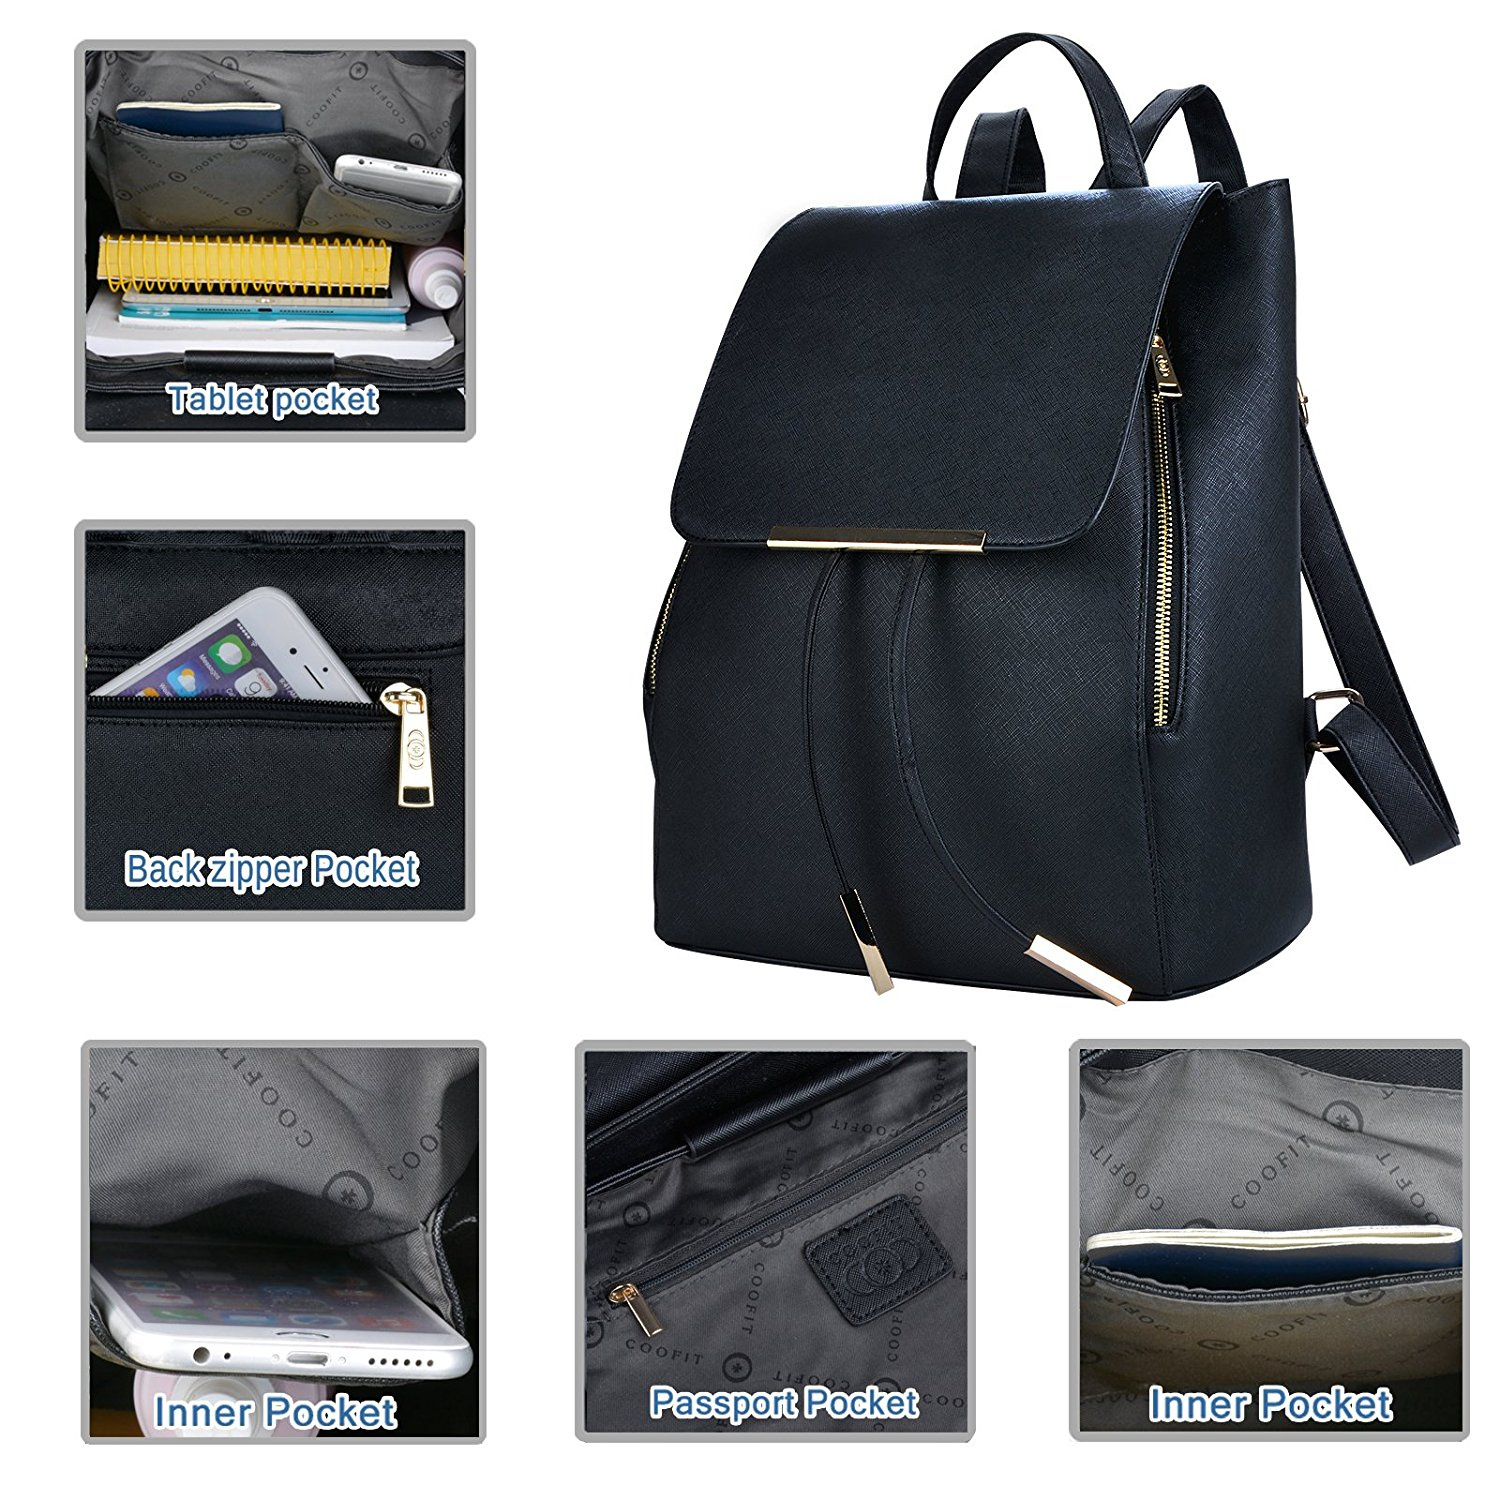 0d8984e64a19 Coofit Bags  Buy Online from Fishpond.com.au